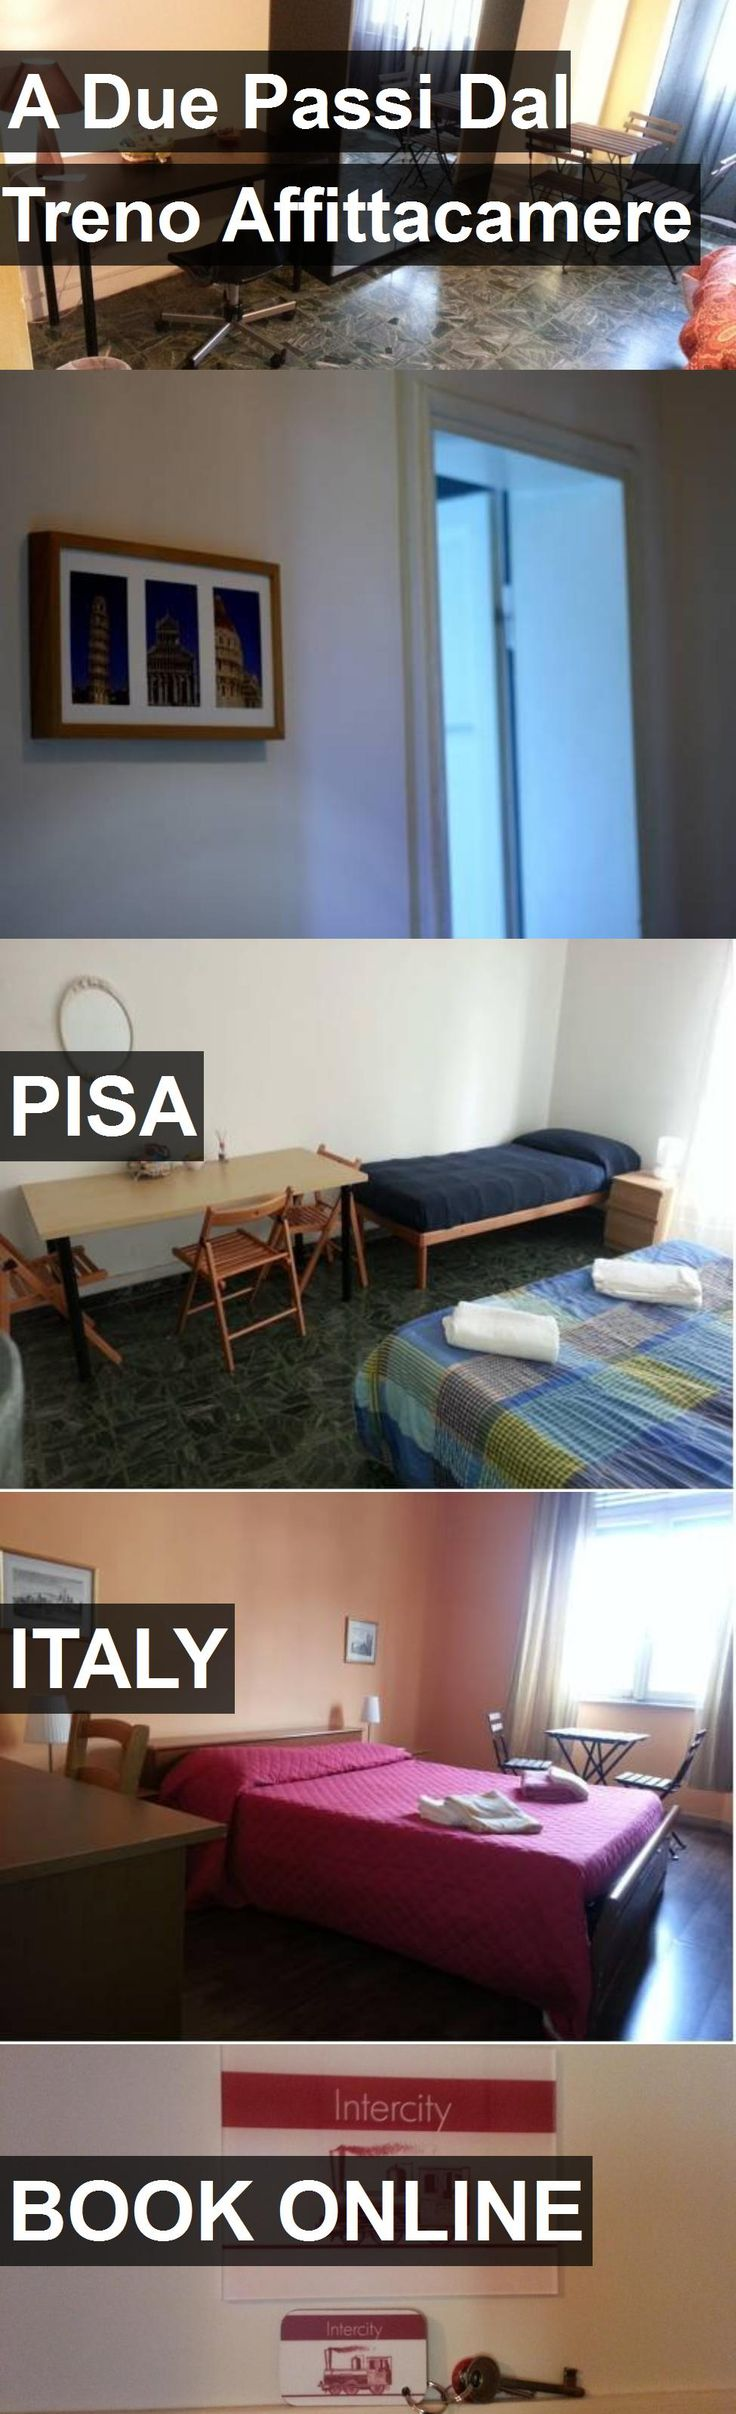 Hotel A Due Passi Dal Treno Affittacamere in Pisa, Italy. For more information, photos, reviews and best prices please follow the link. #Italy #Pisa #travel #vacation #hotel